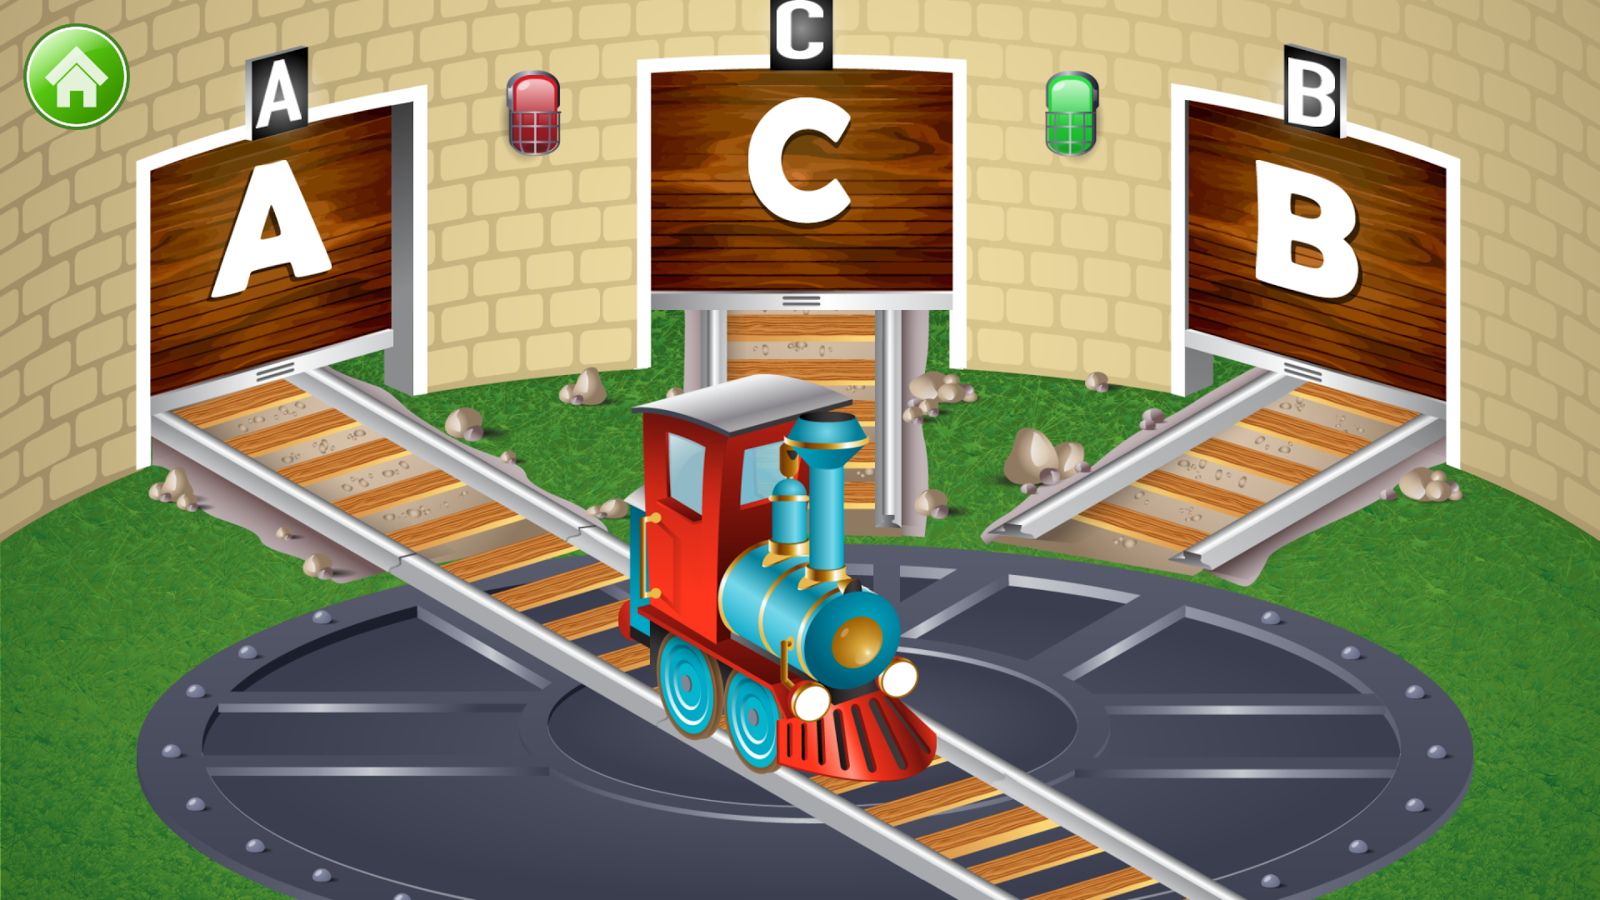 learn letter names and sounds with abc trains android apps on